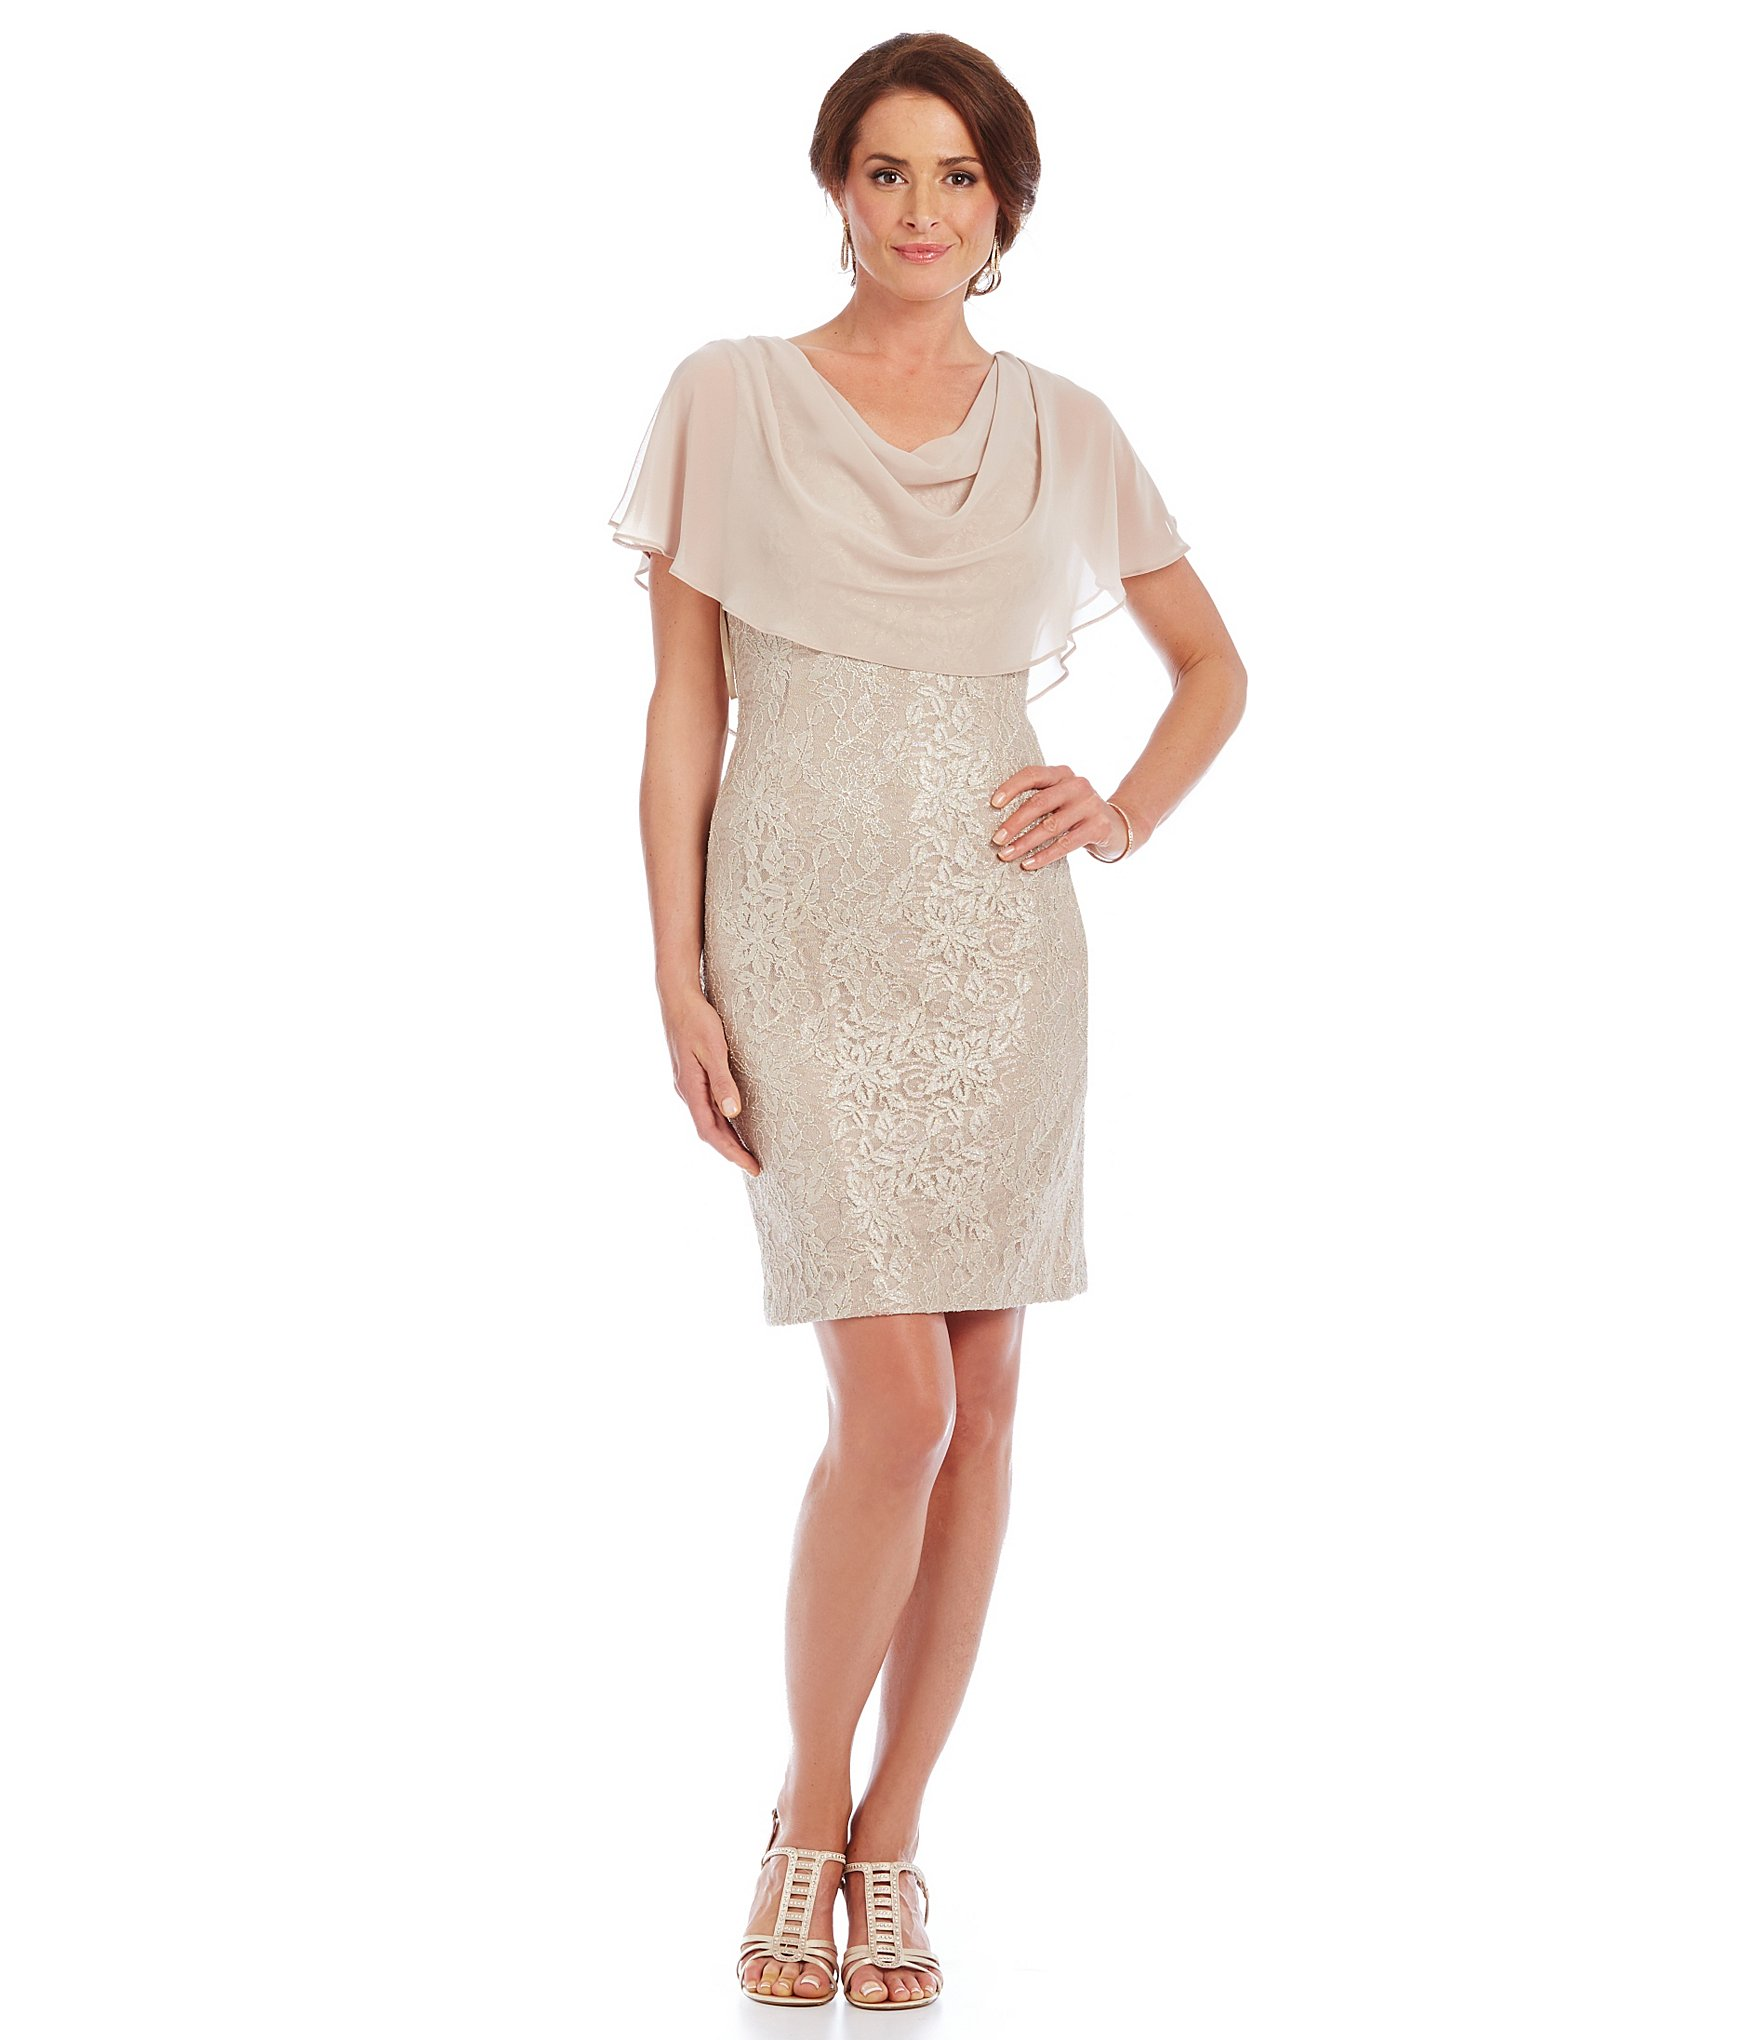 Petite size 0 cocktail dresses clearance